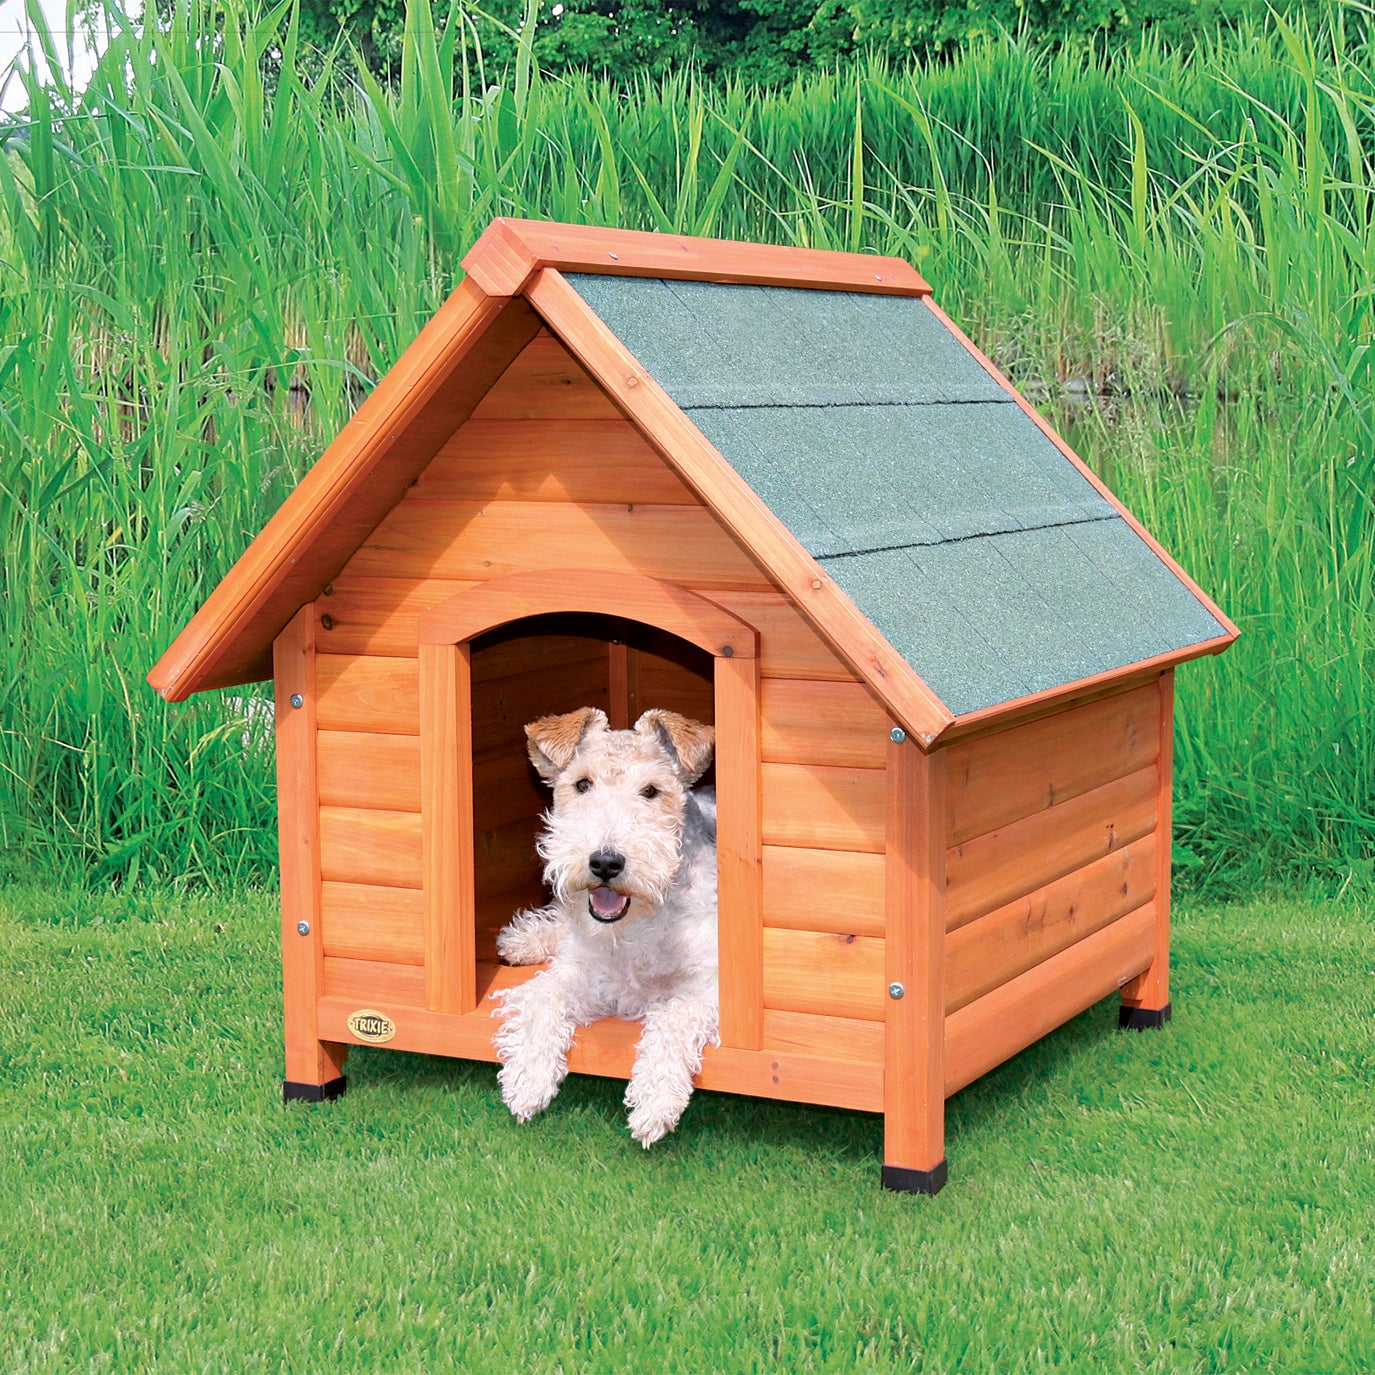 Trixie Small Log Cabin Dog House (Log Cabin - Small), Brown